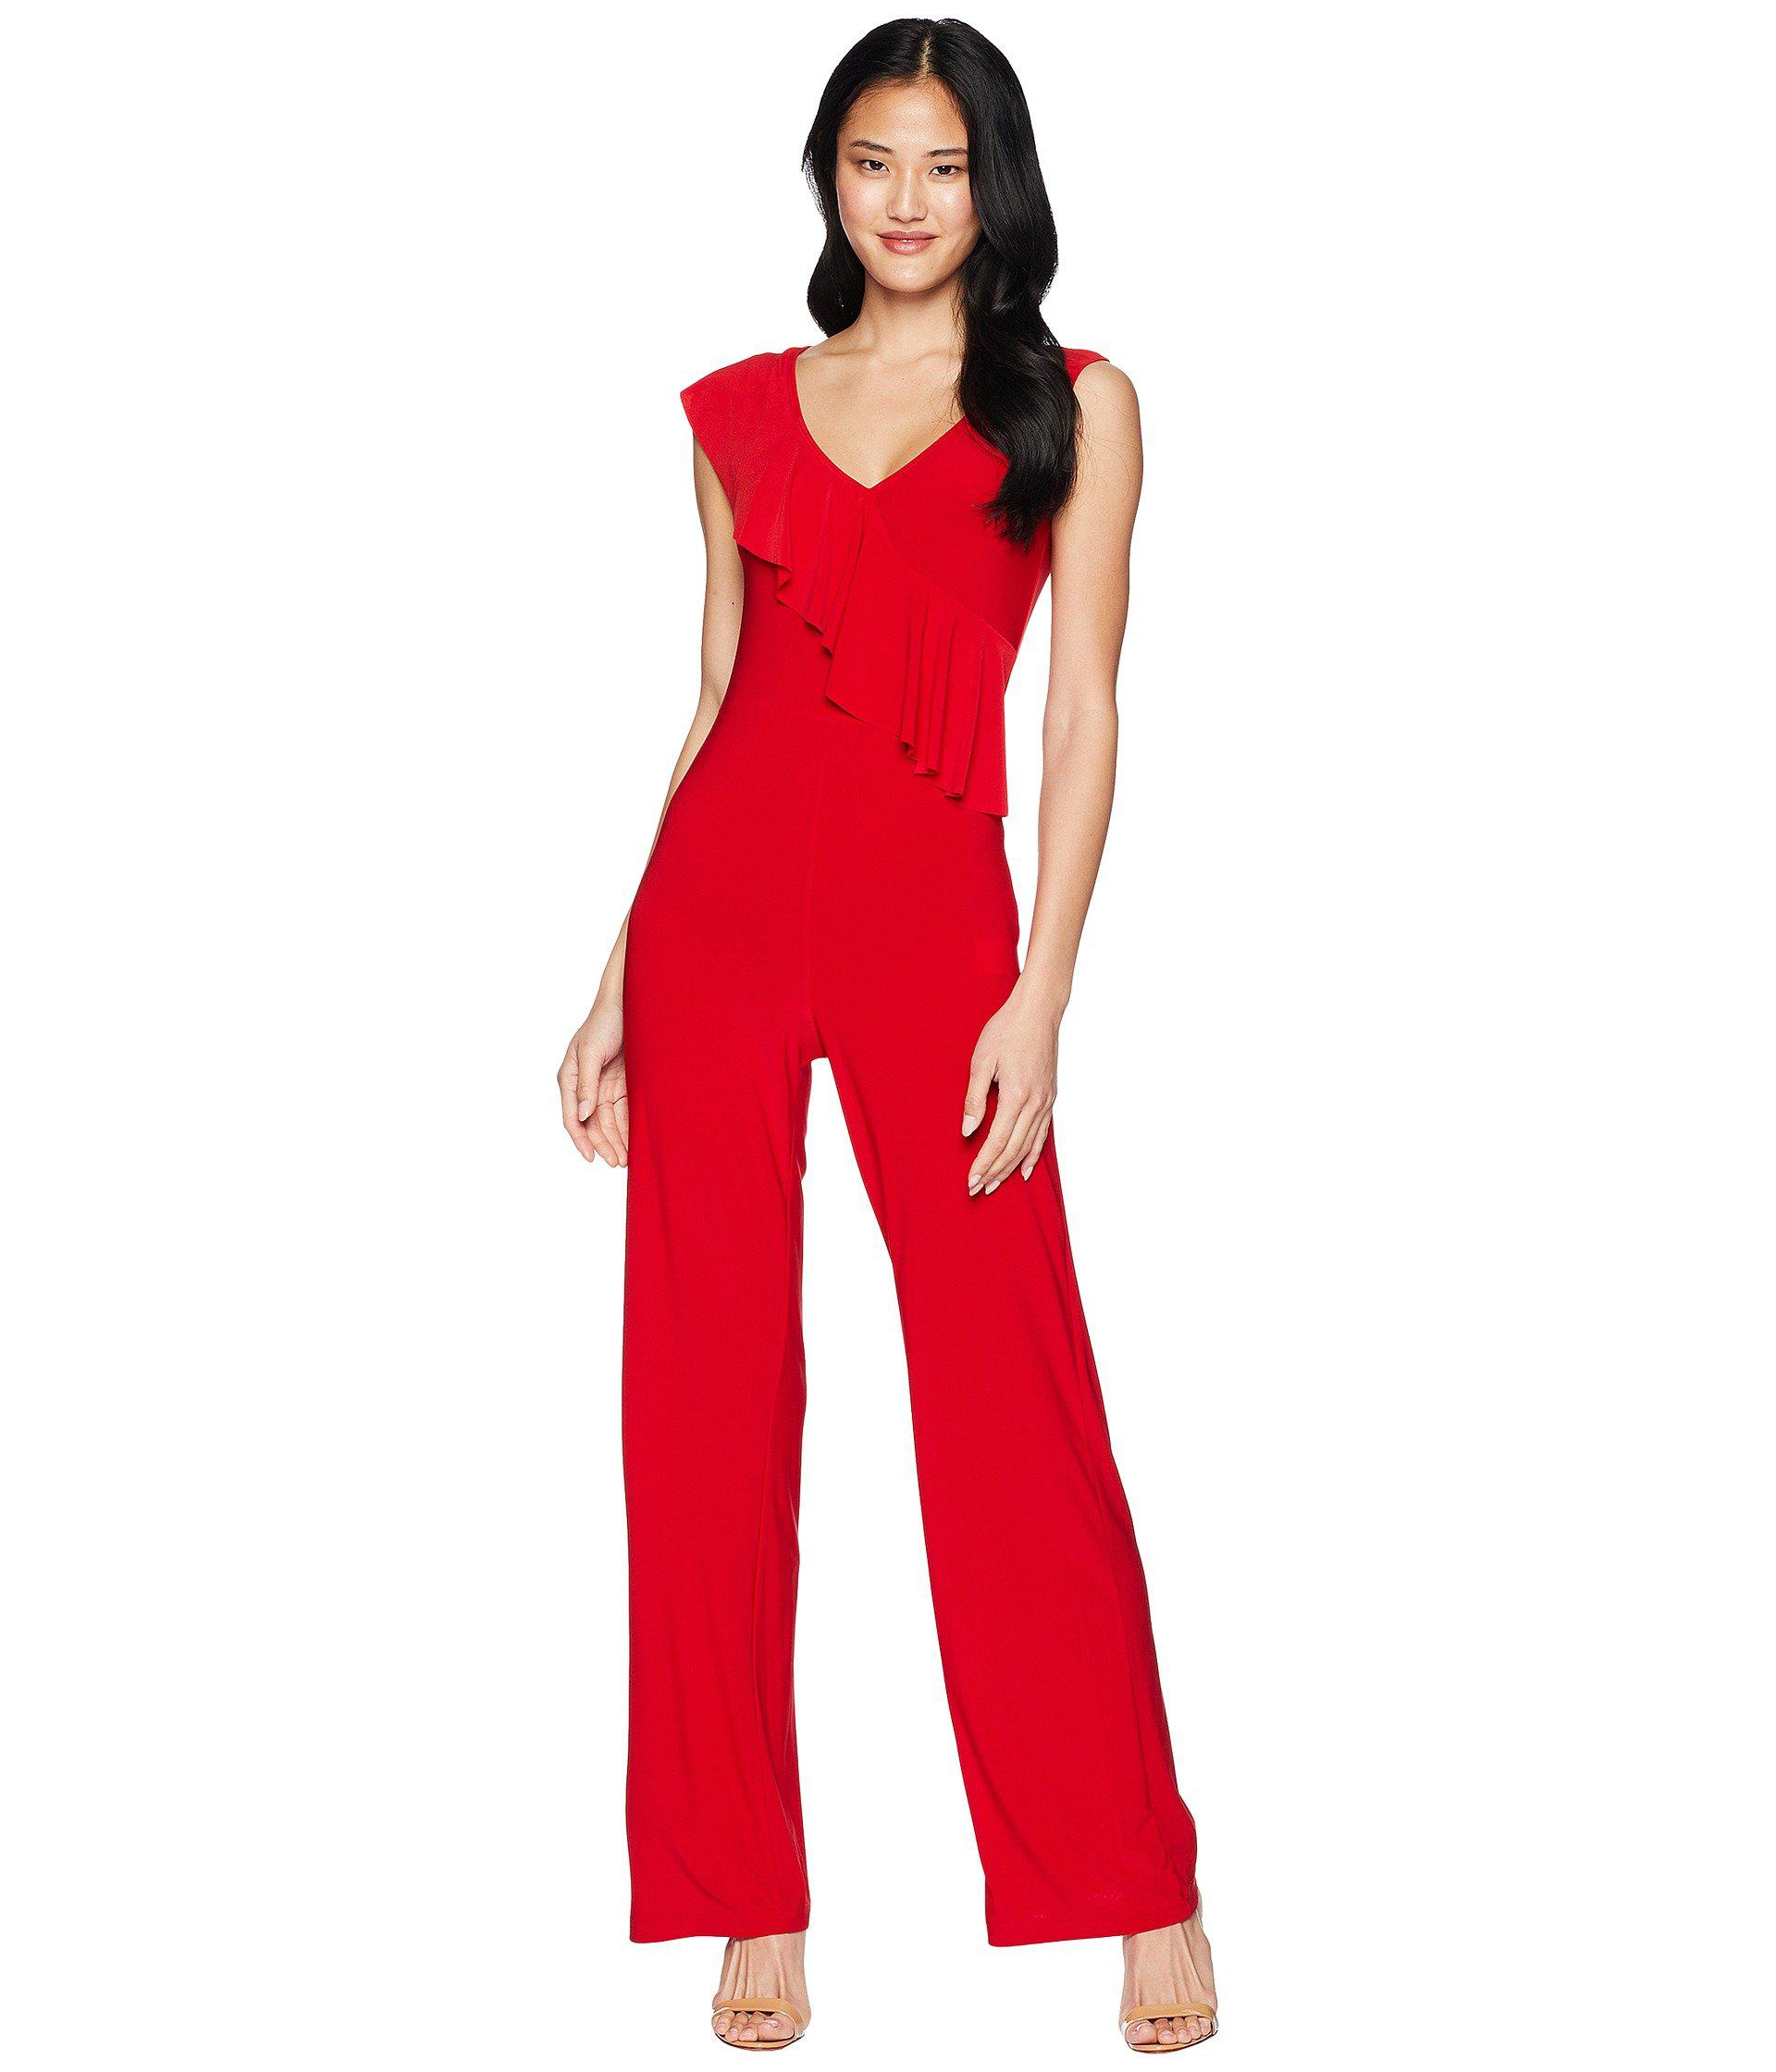 ebb4145621d Lyst - Bebe Asymmetrical Ruffle Jumpsuit in Red - Save 26%